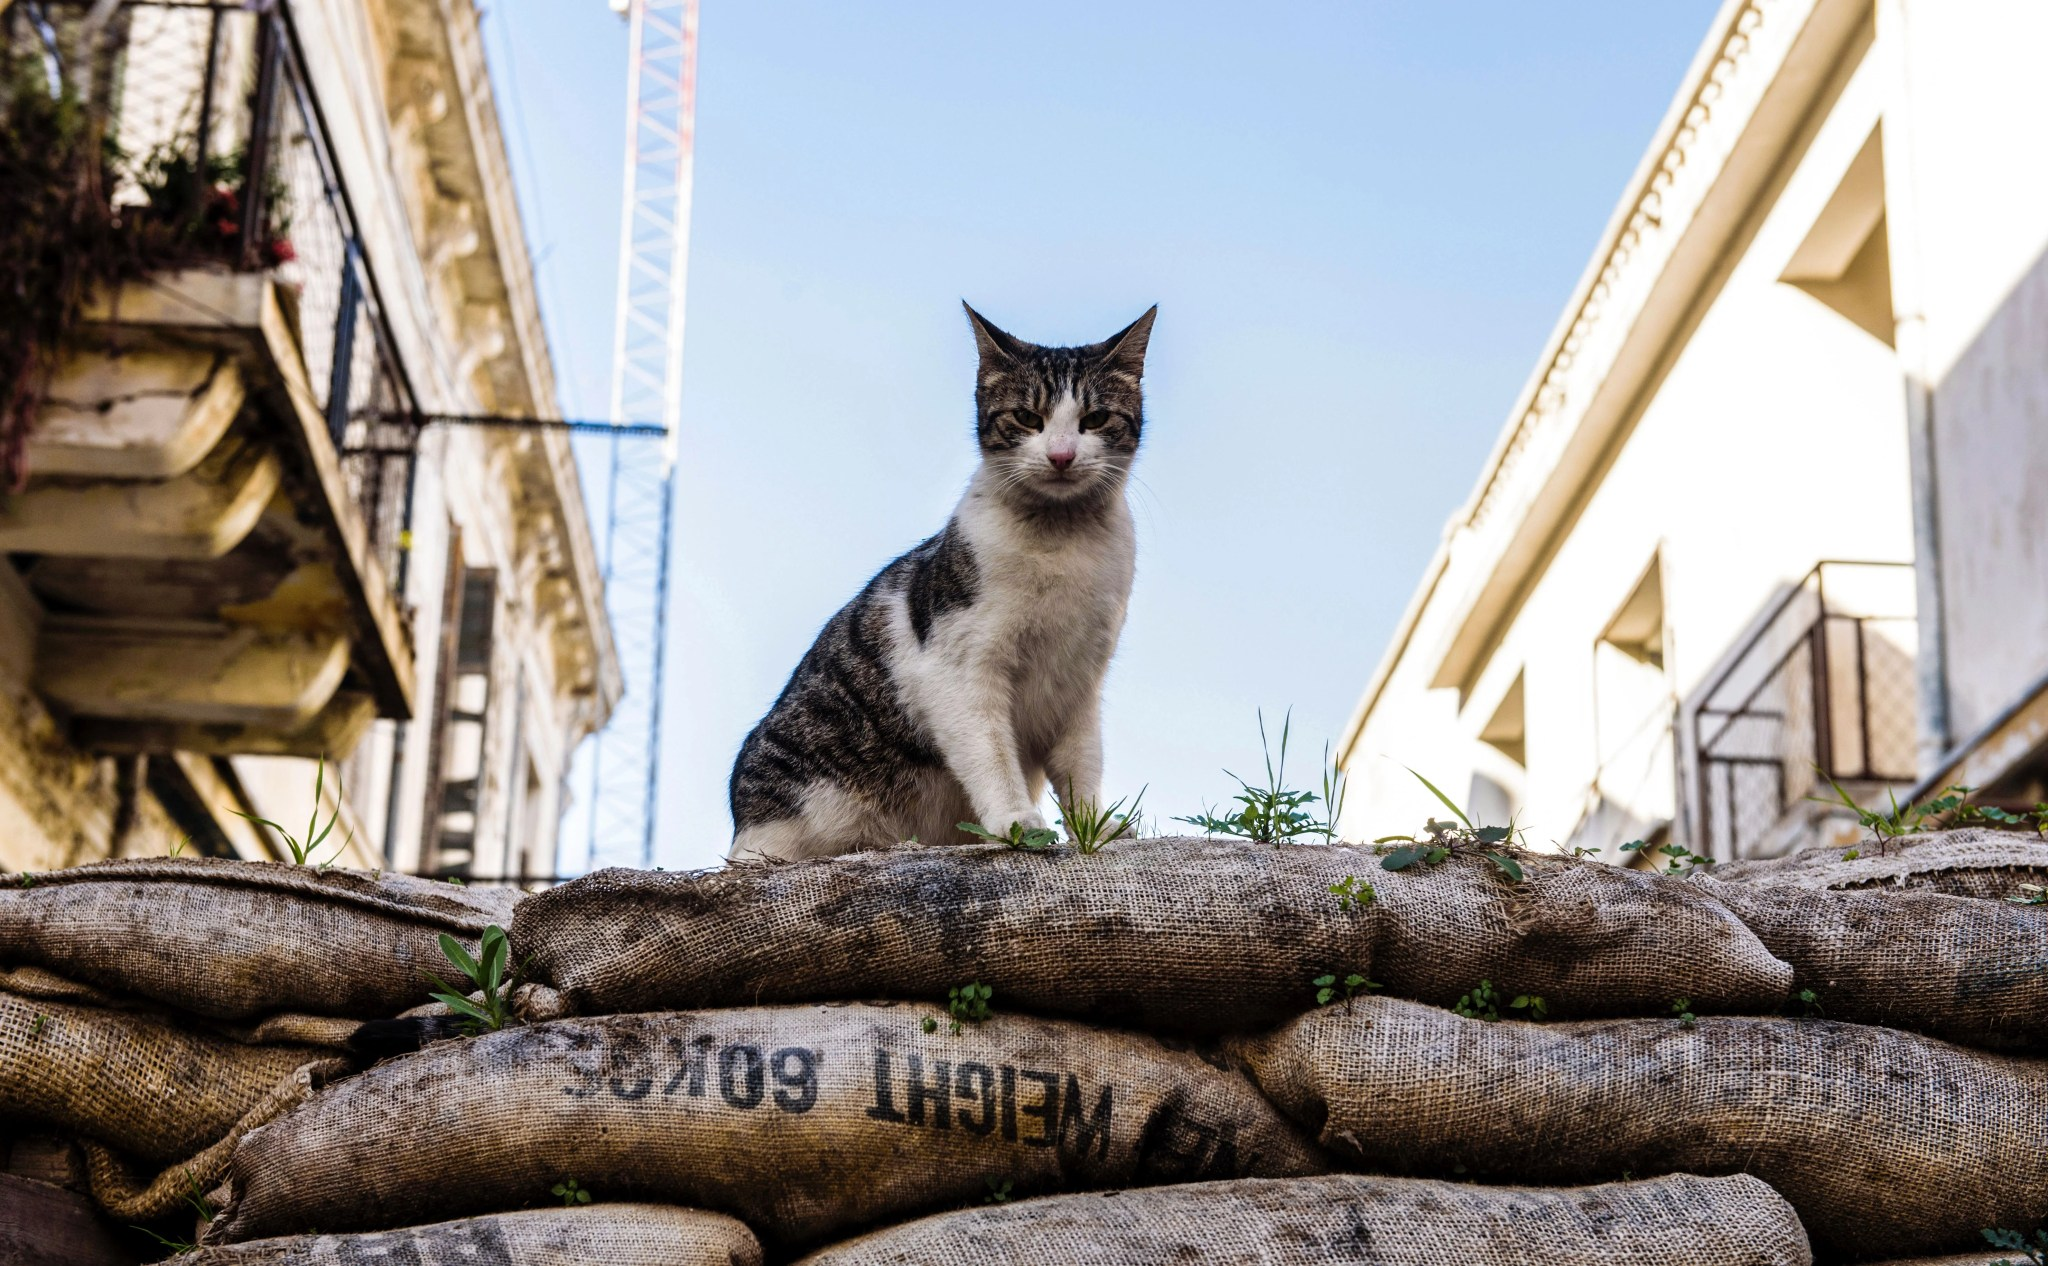 A cat mans the barricades in the divided Cypriot capital of Nicosia. Photo by Iakovos Hatzistavrou via Getty Images.